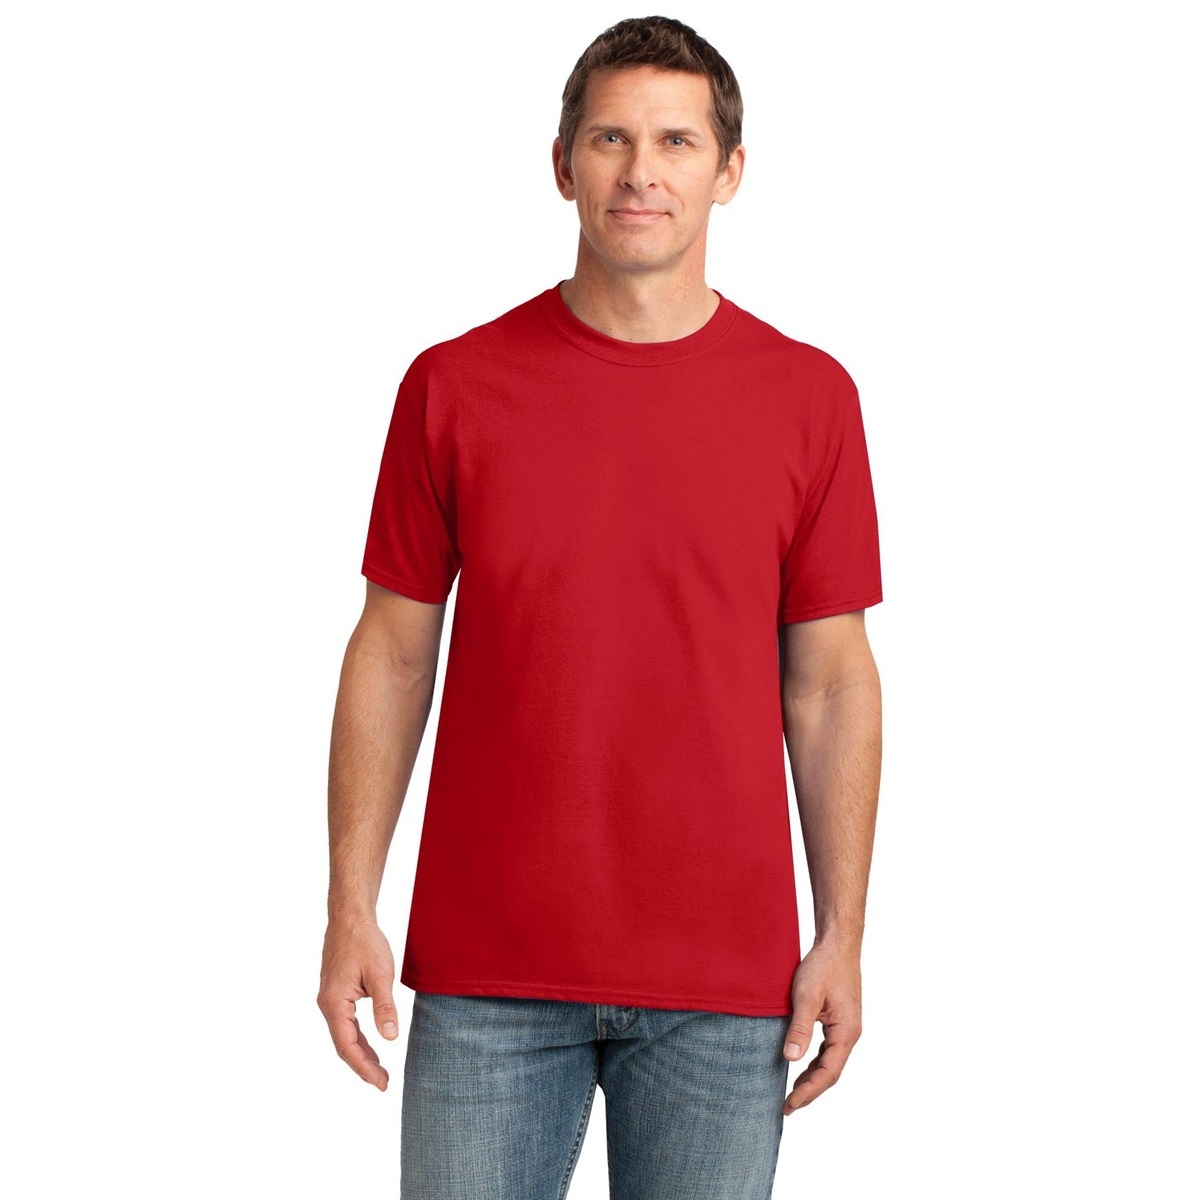 Gildan 42000 performance t shirt red for Gildan t shirts online